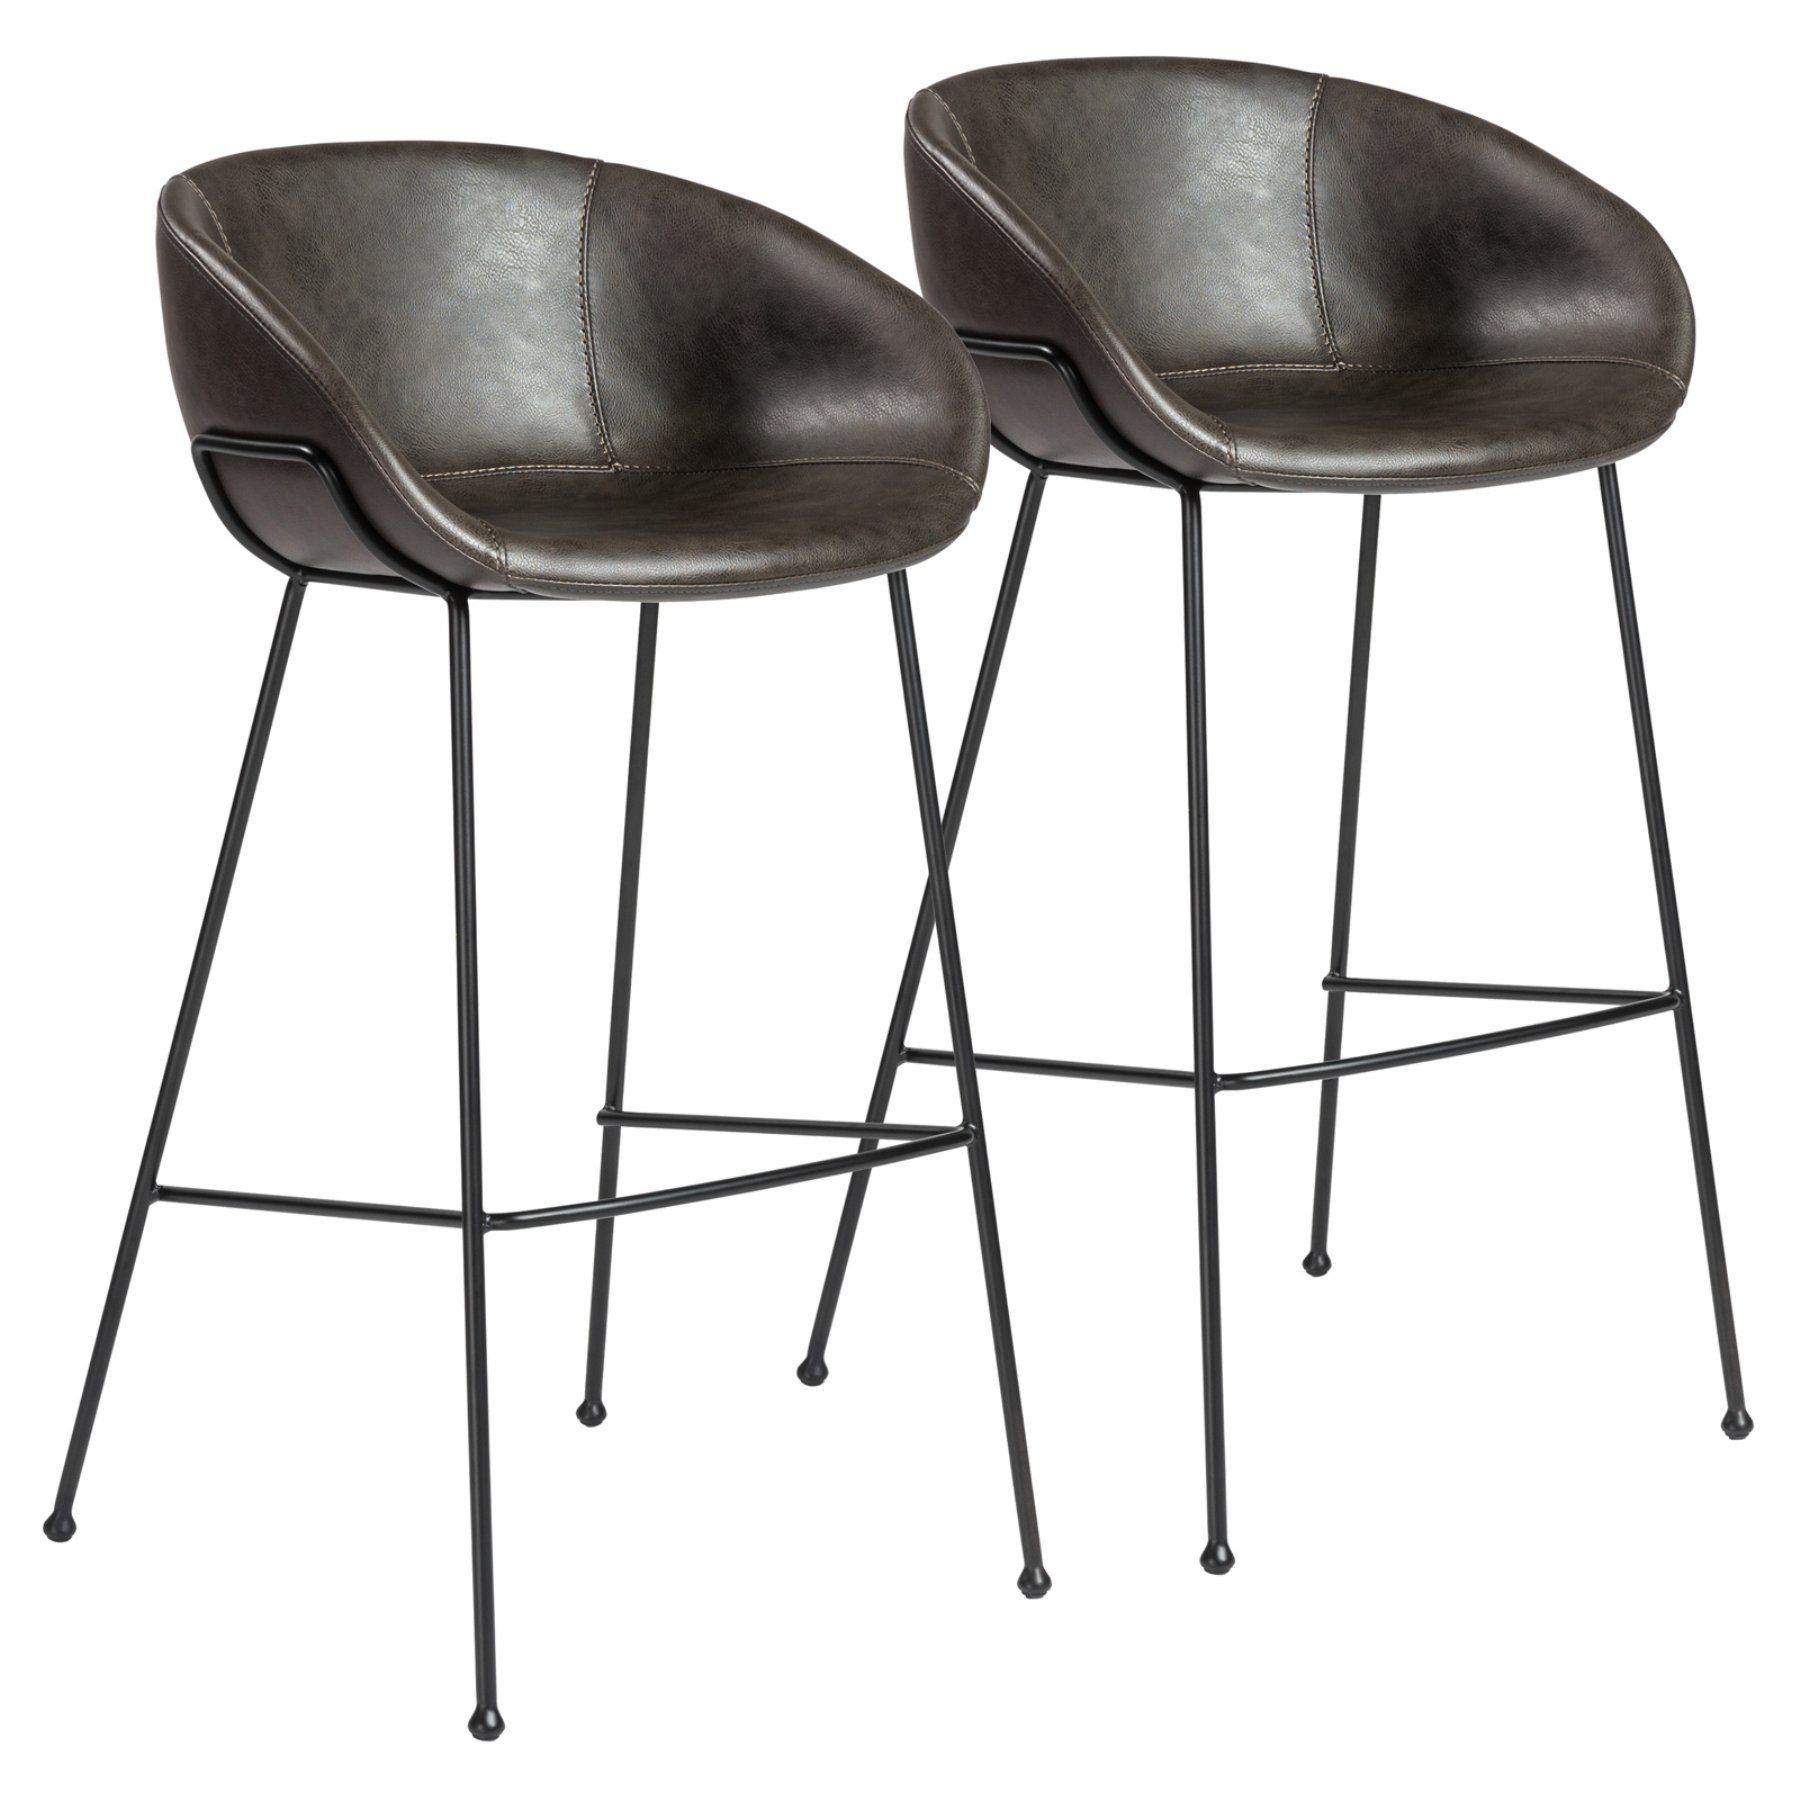 Euro Style Zach 30 In Bar Stool Set Of 2 Products Pinterest